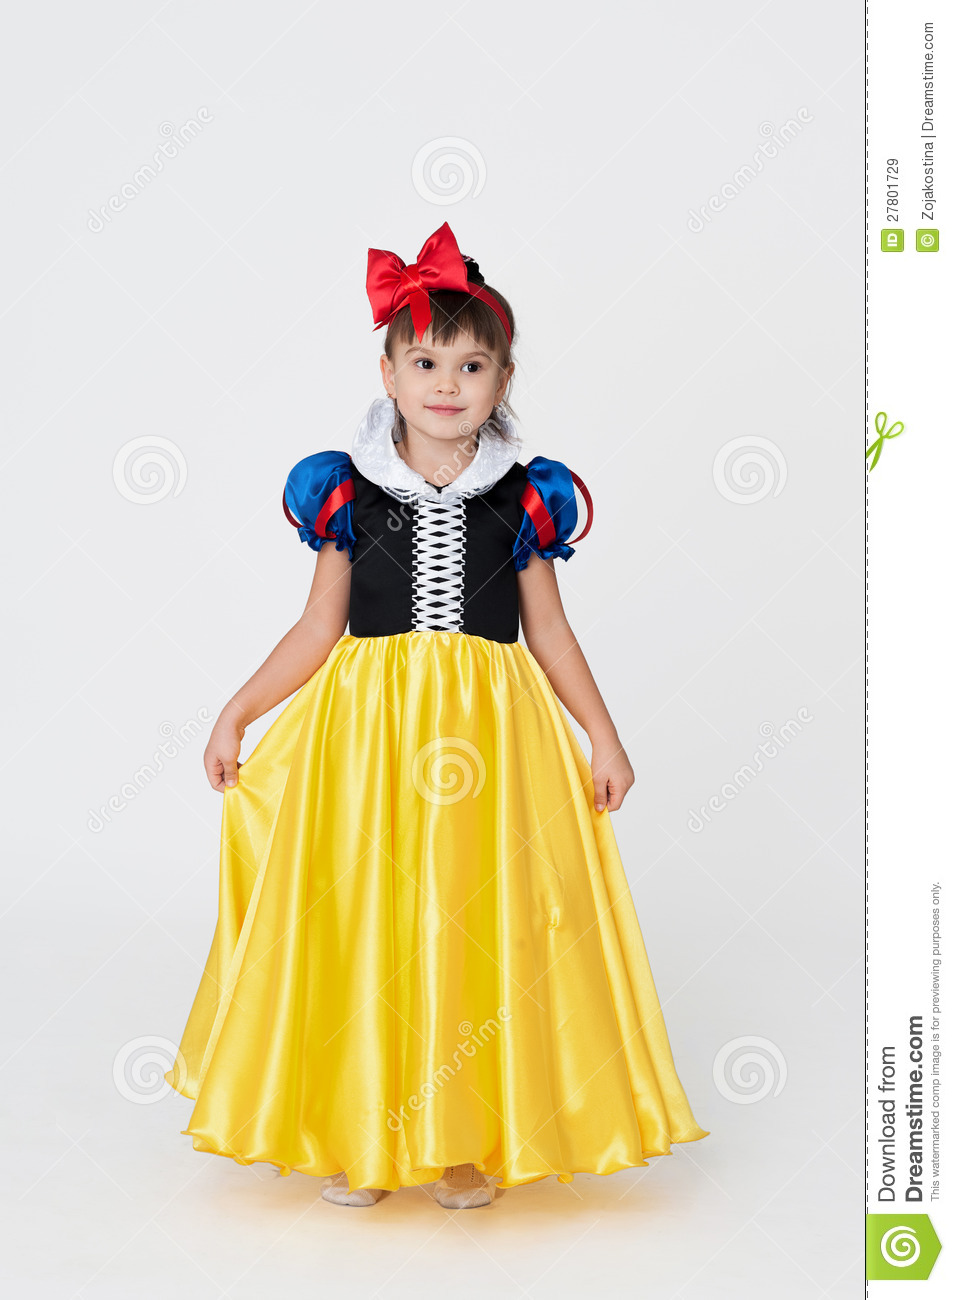 Snow White Fancy Dress Royalty Free Stock Images - Image: 27801729